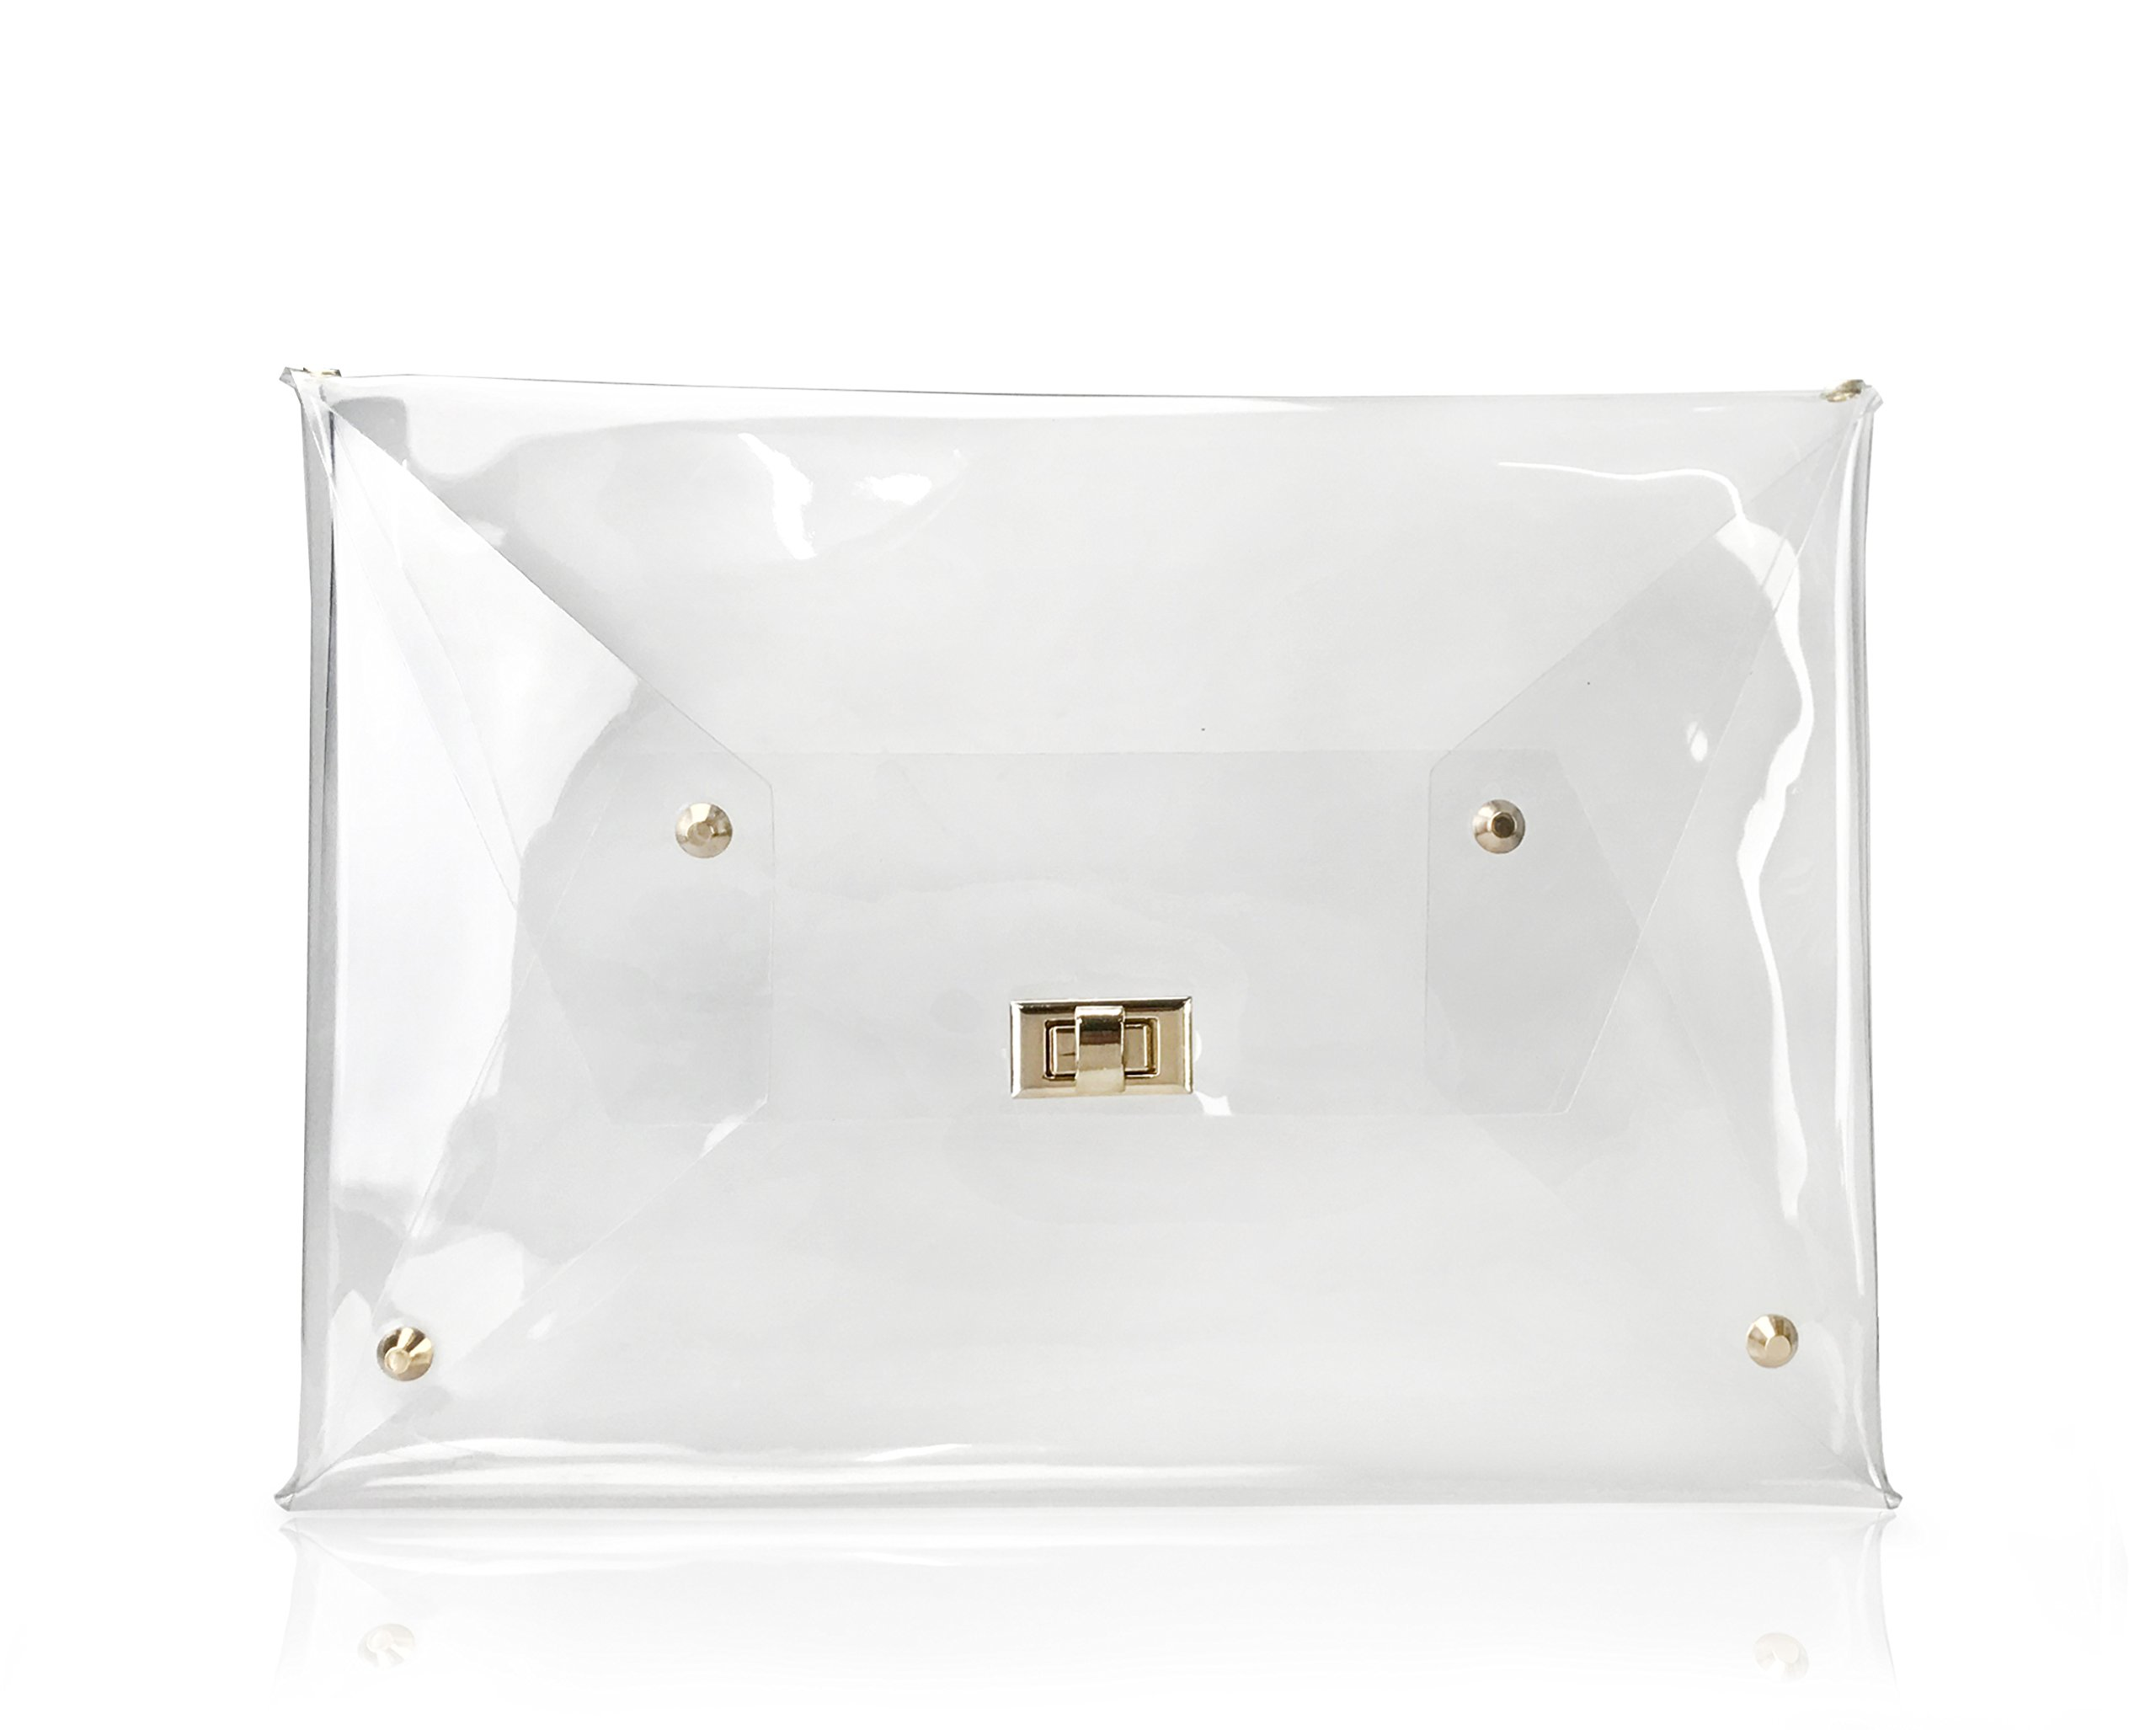 Hoxis Large Size PVC Clear Envelope Clutch Gold Chain Crossbody Shoulder Bag Women's Purse (Clear)